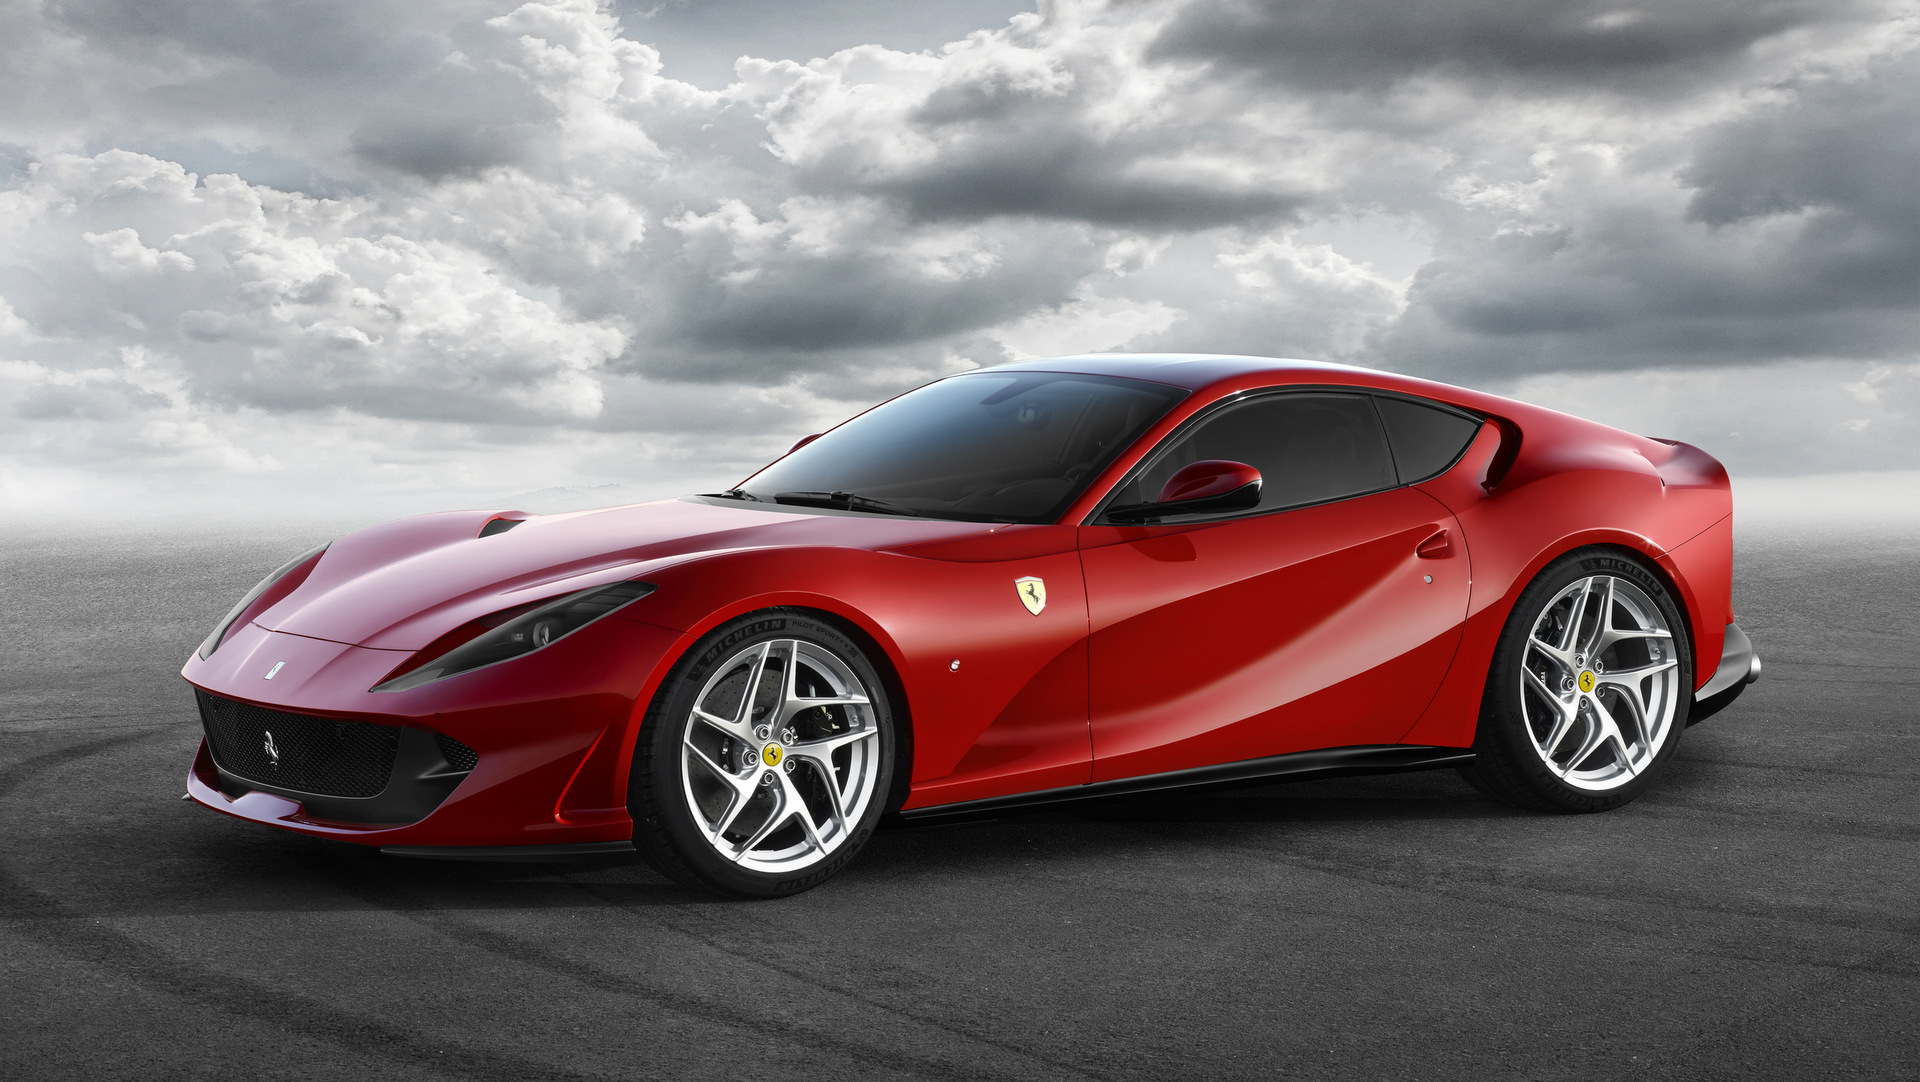 2018 Ferrari 812 Superfast Car Wallpaper Hd And Widescreen